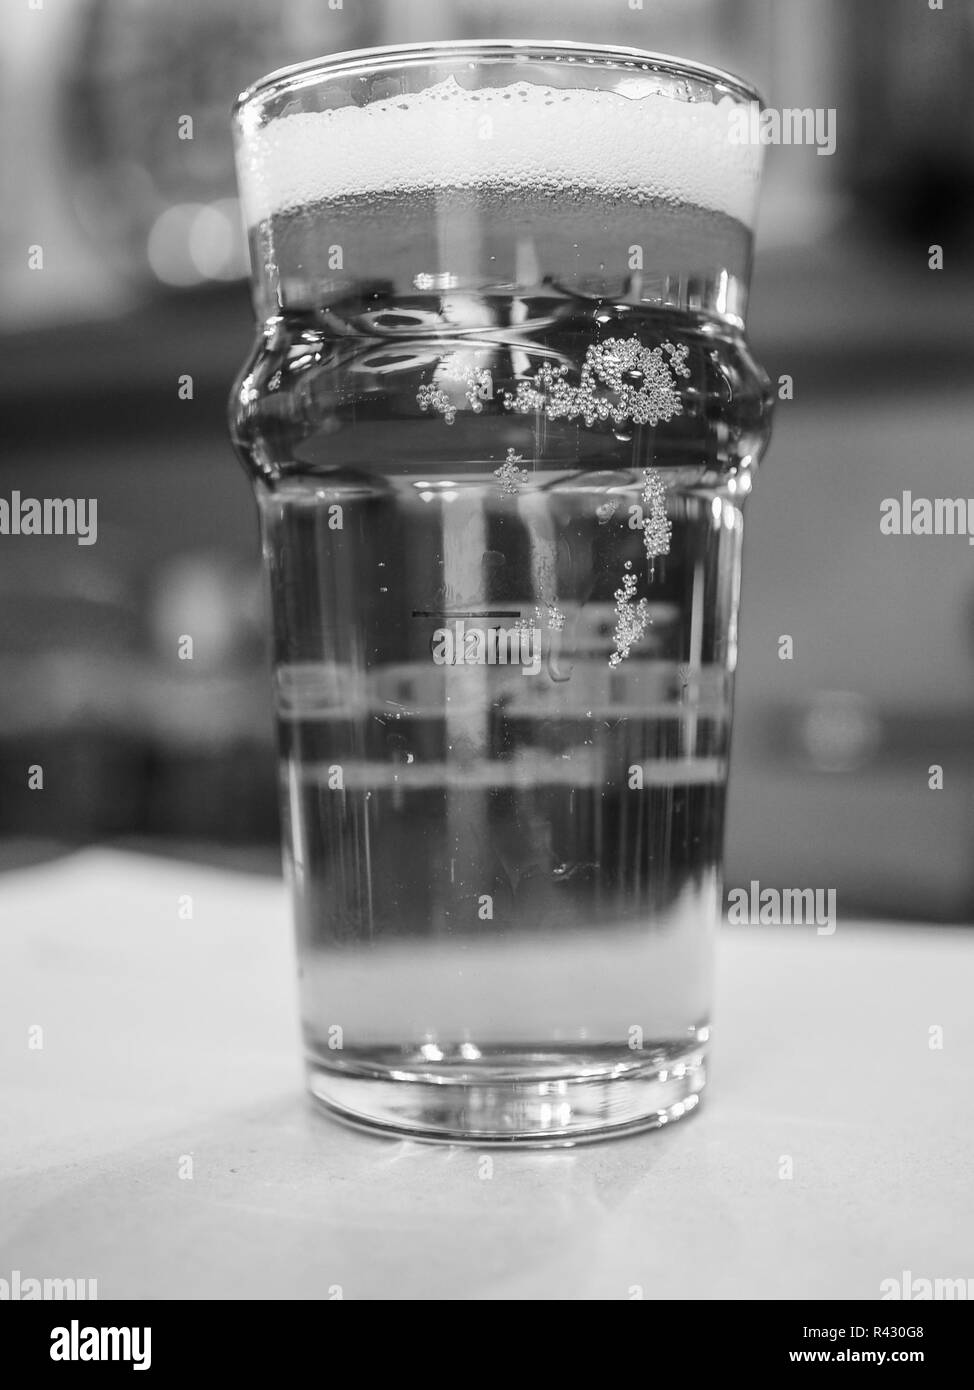 Black and white Pint of British ale beer - Stock Image